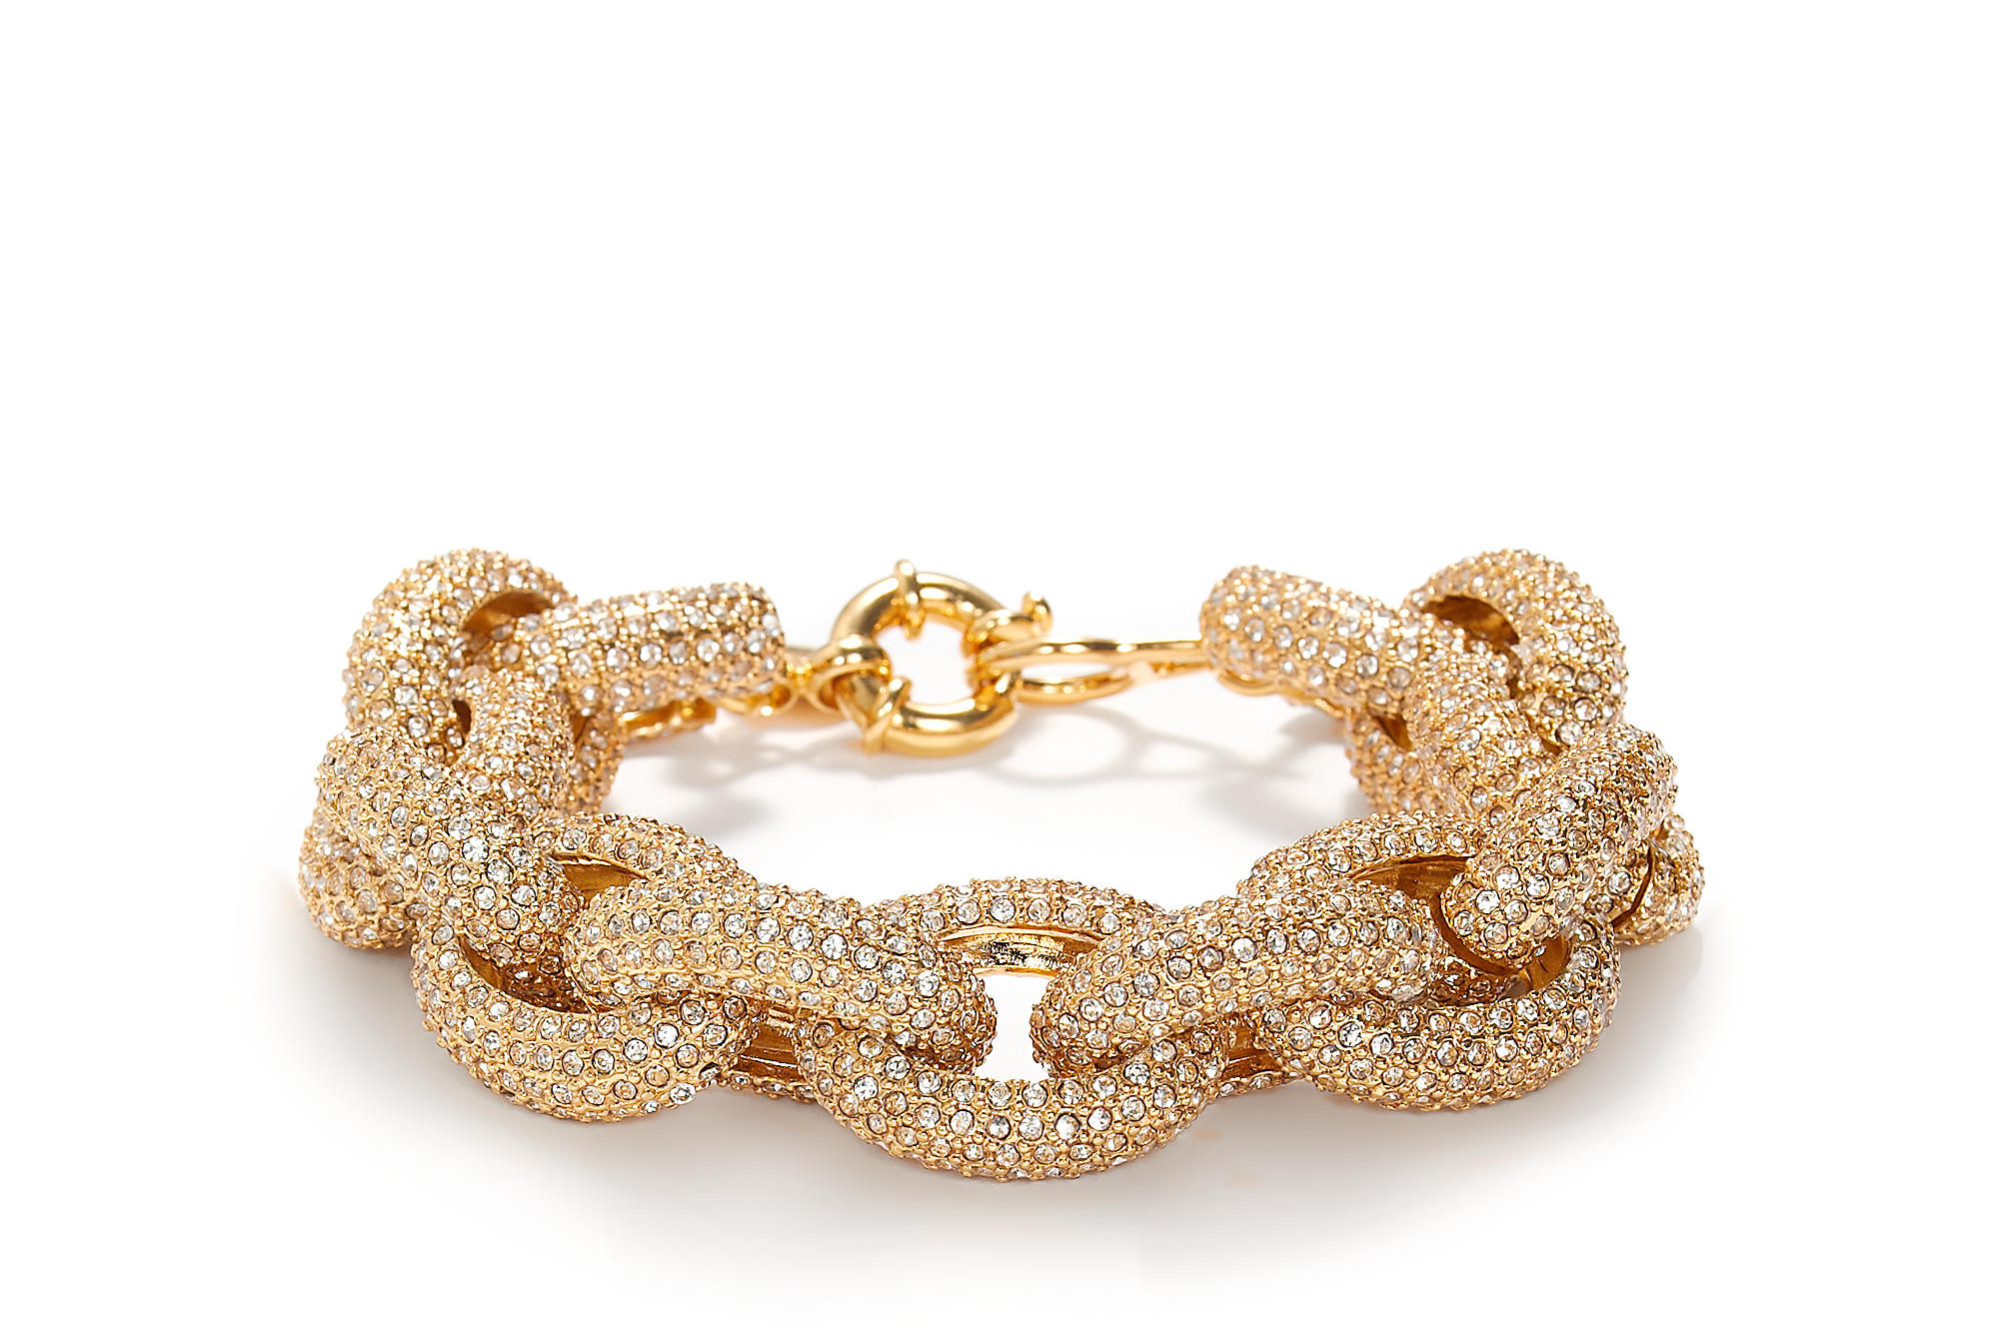 Classic Pavé Link Bracelet in gold with white stones from J Crew